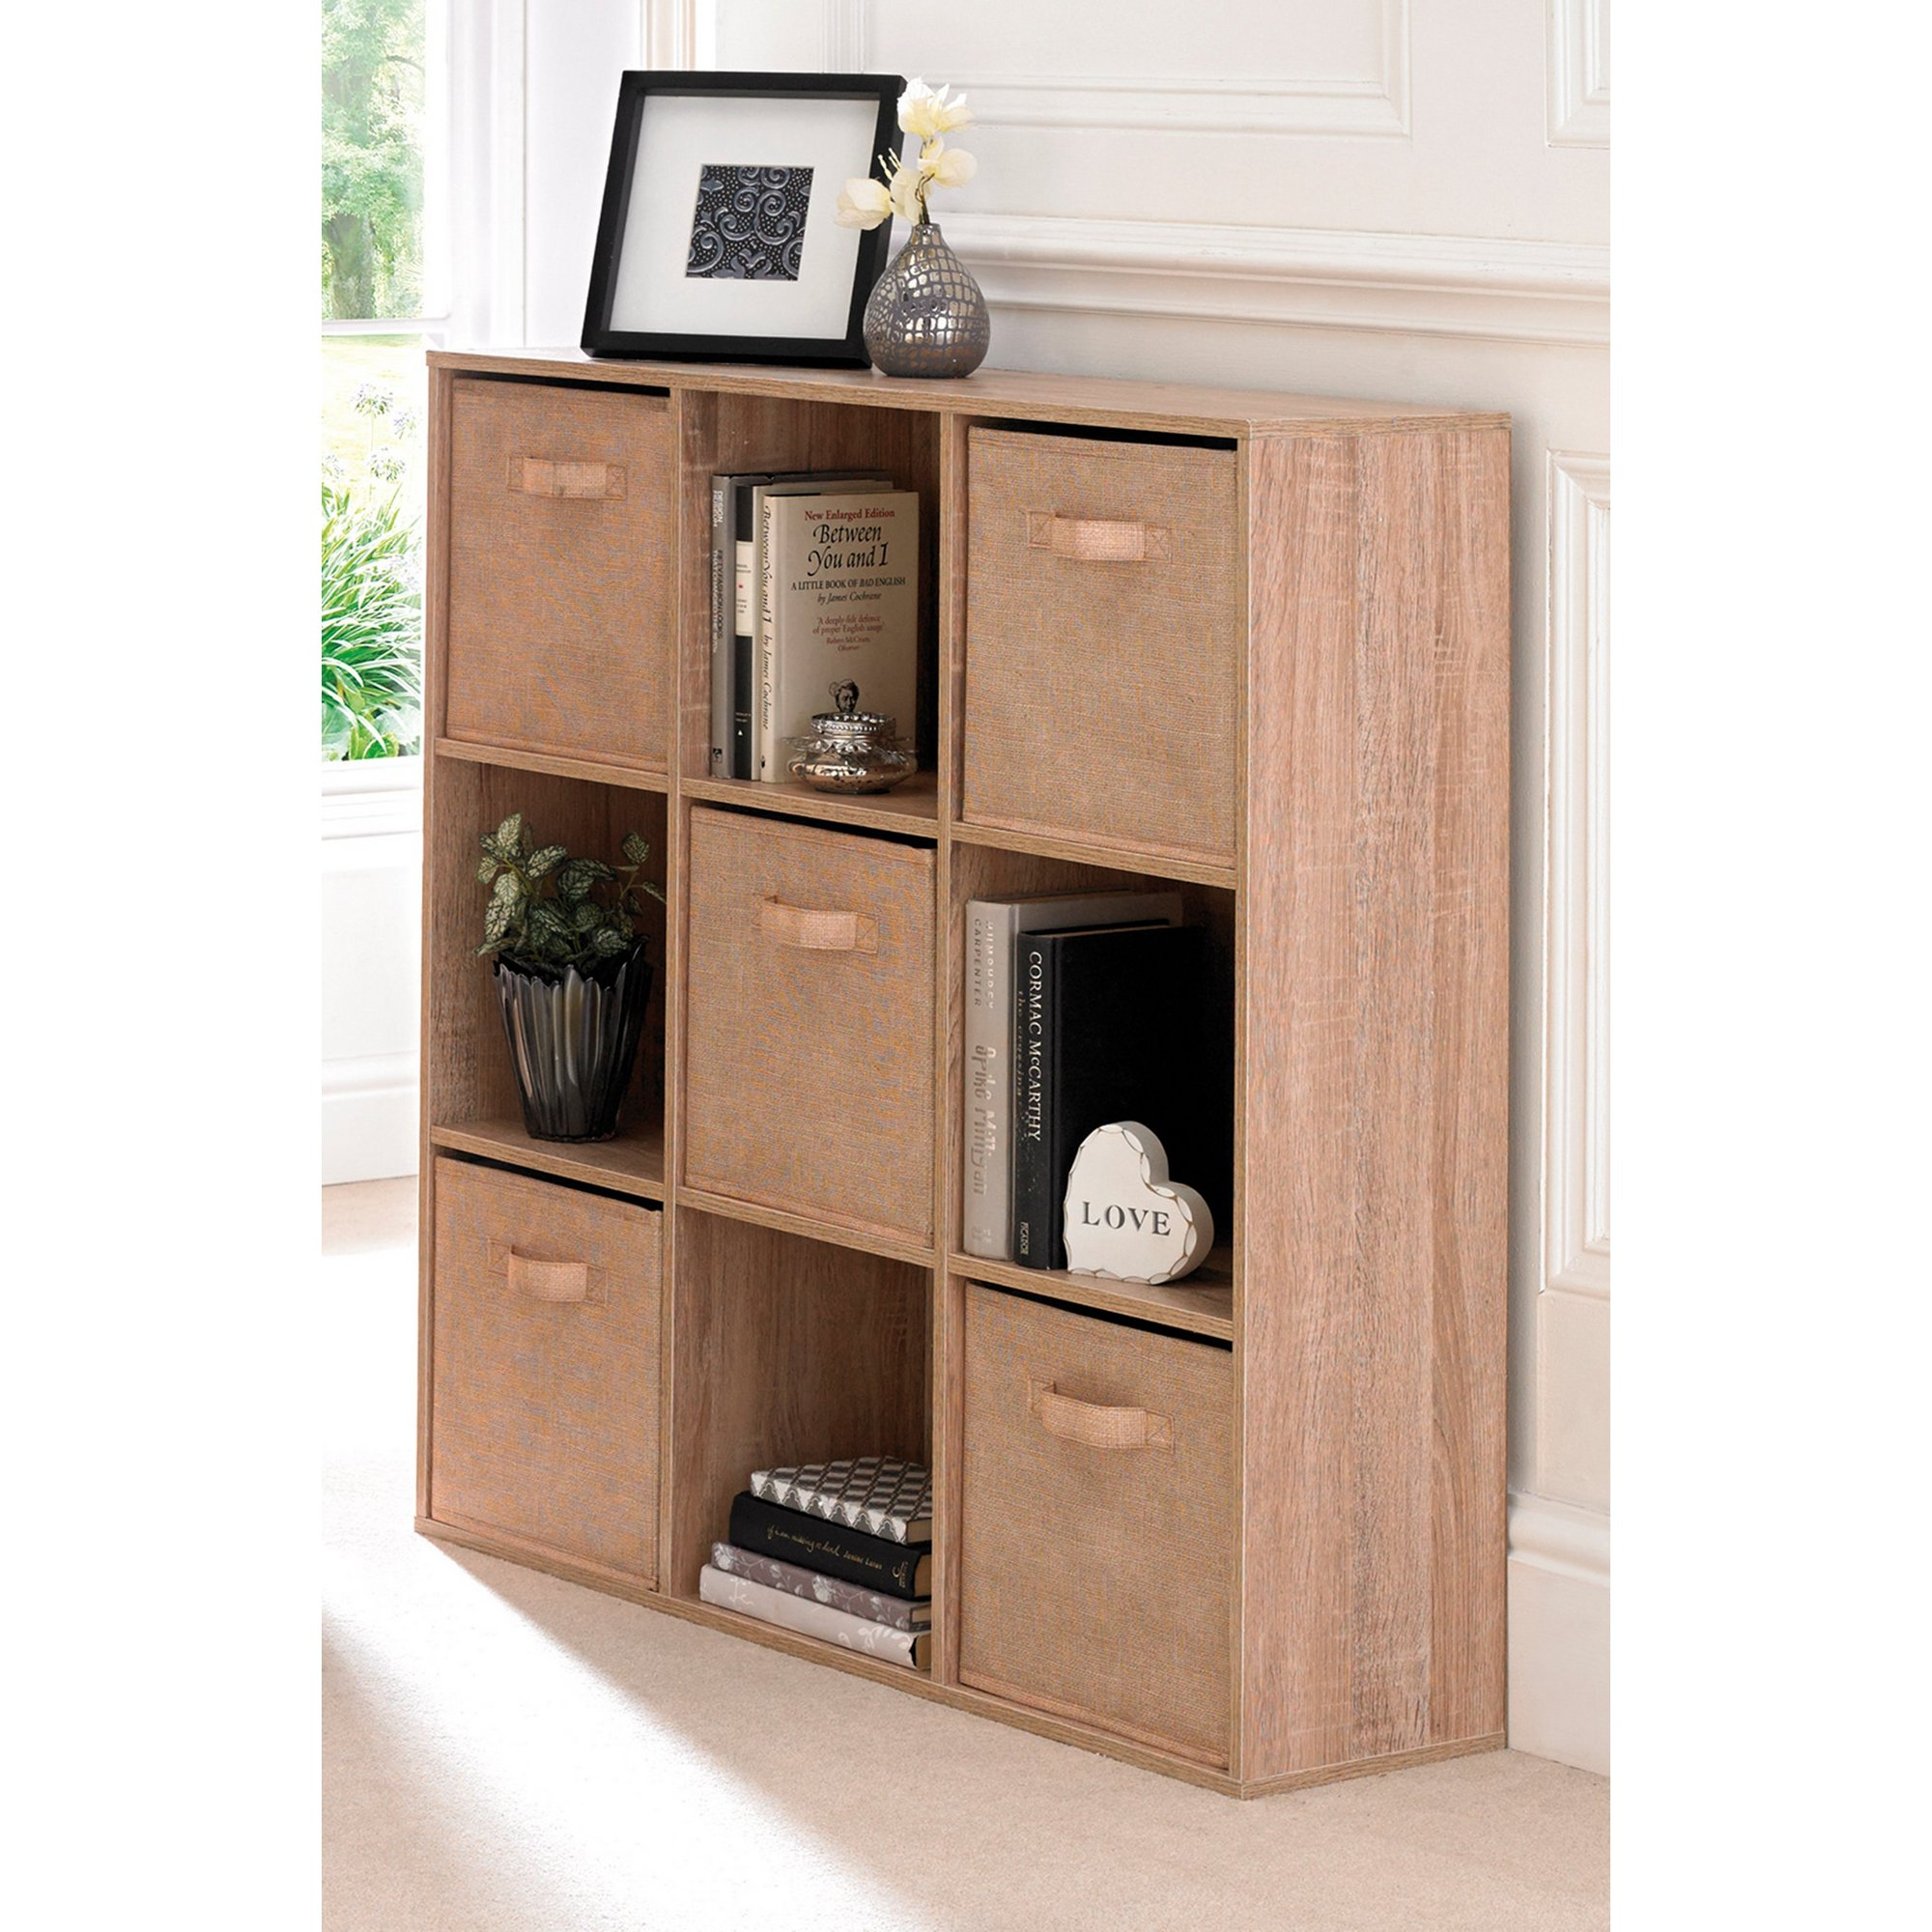 Image of 9 Cube Oak-Effect Storage Unit with Canvas Drawers